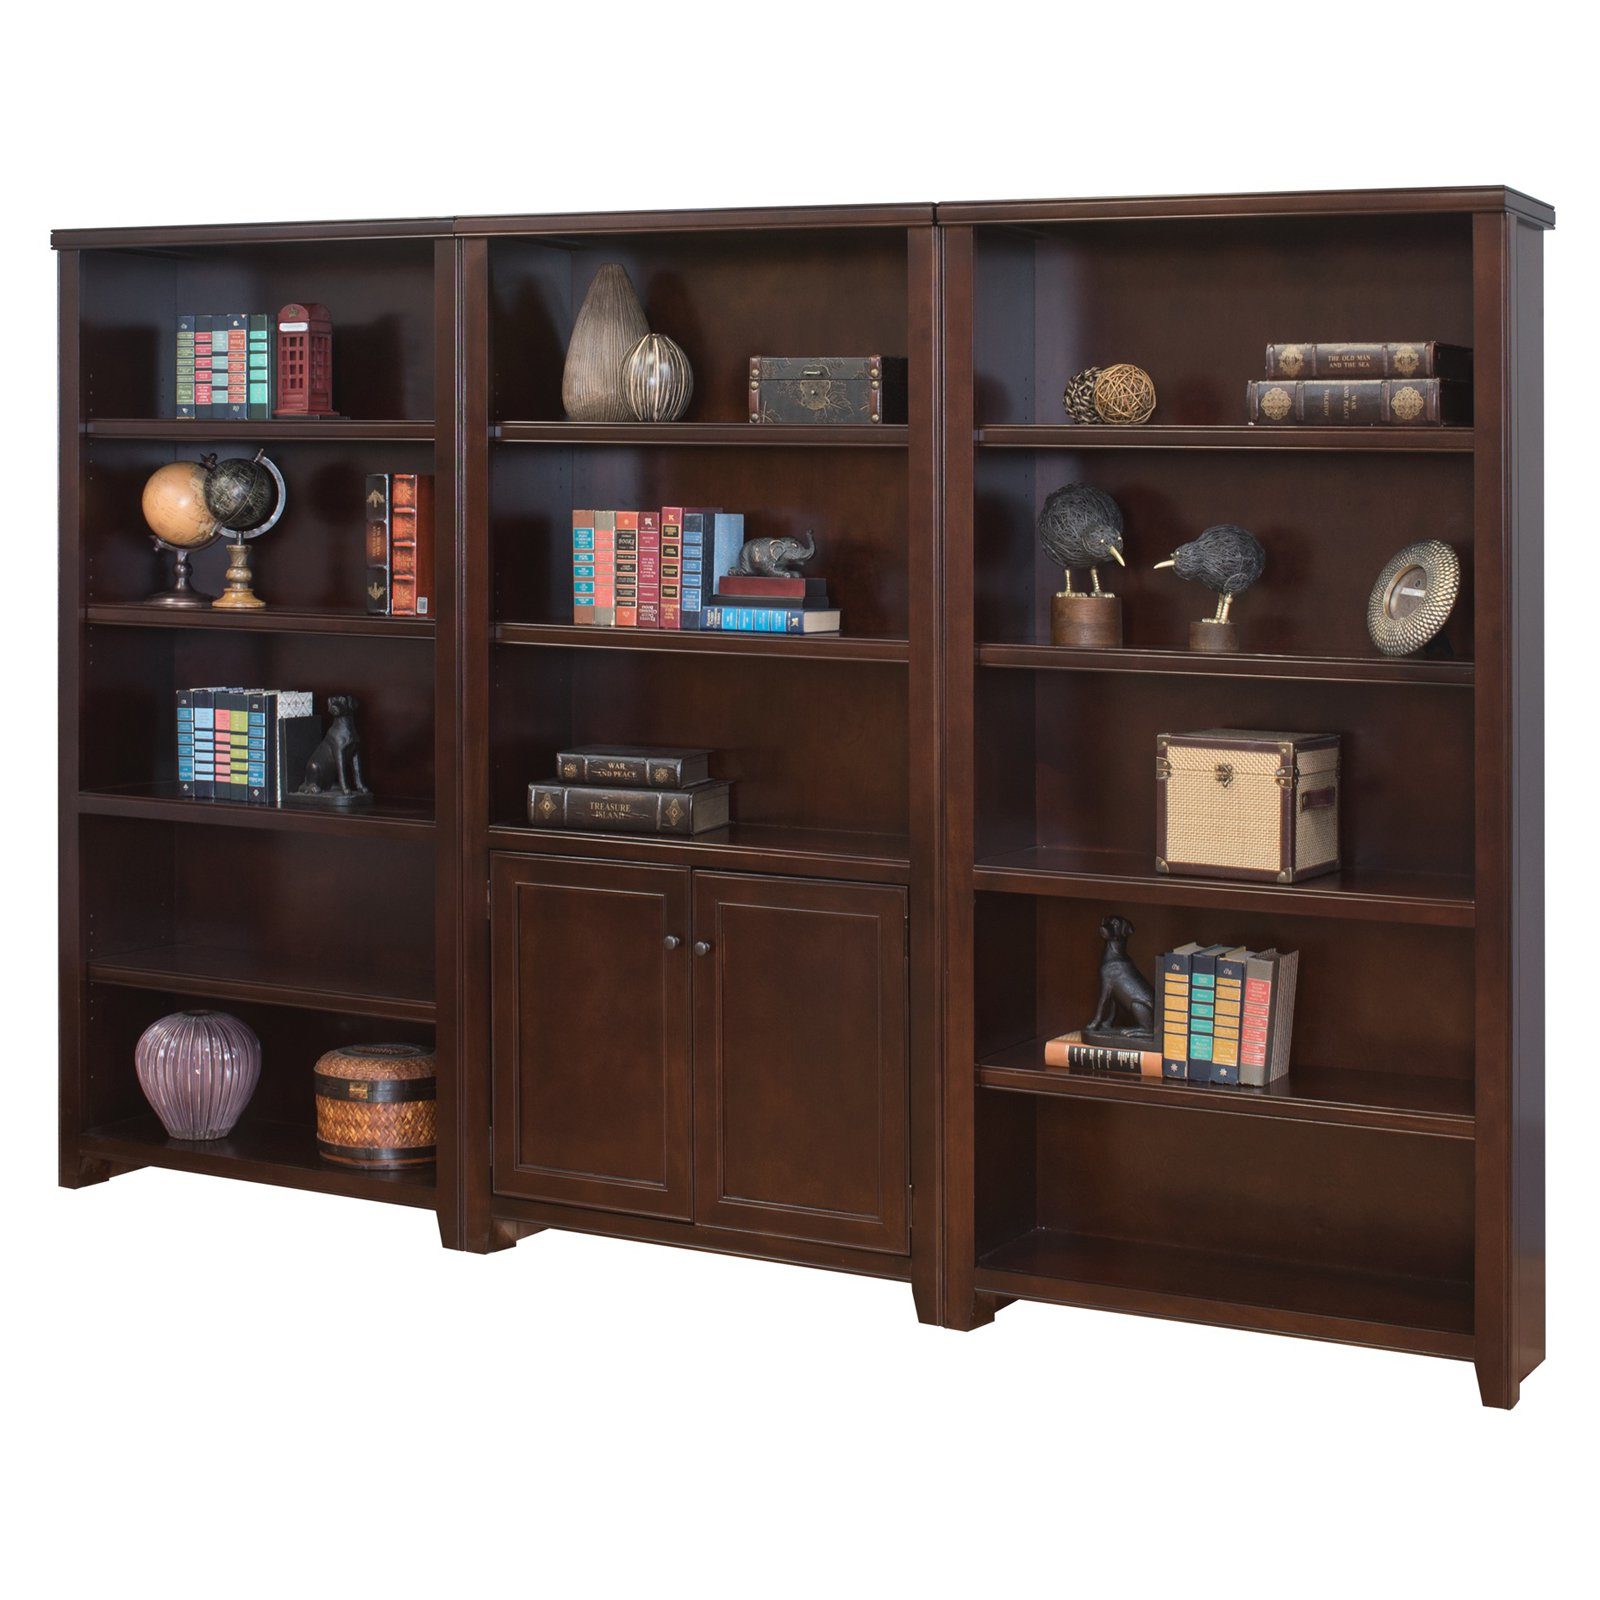 Martin Furniture Tribeca Loft 100 in. Wood Wall Bookcase with Doors - Cherry